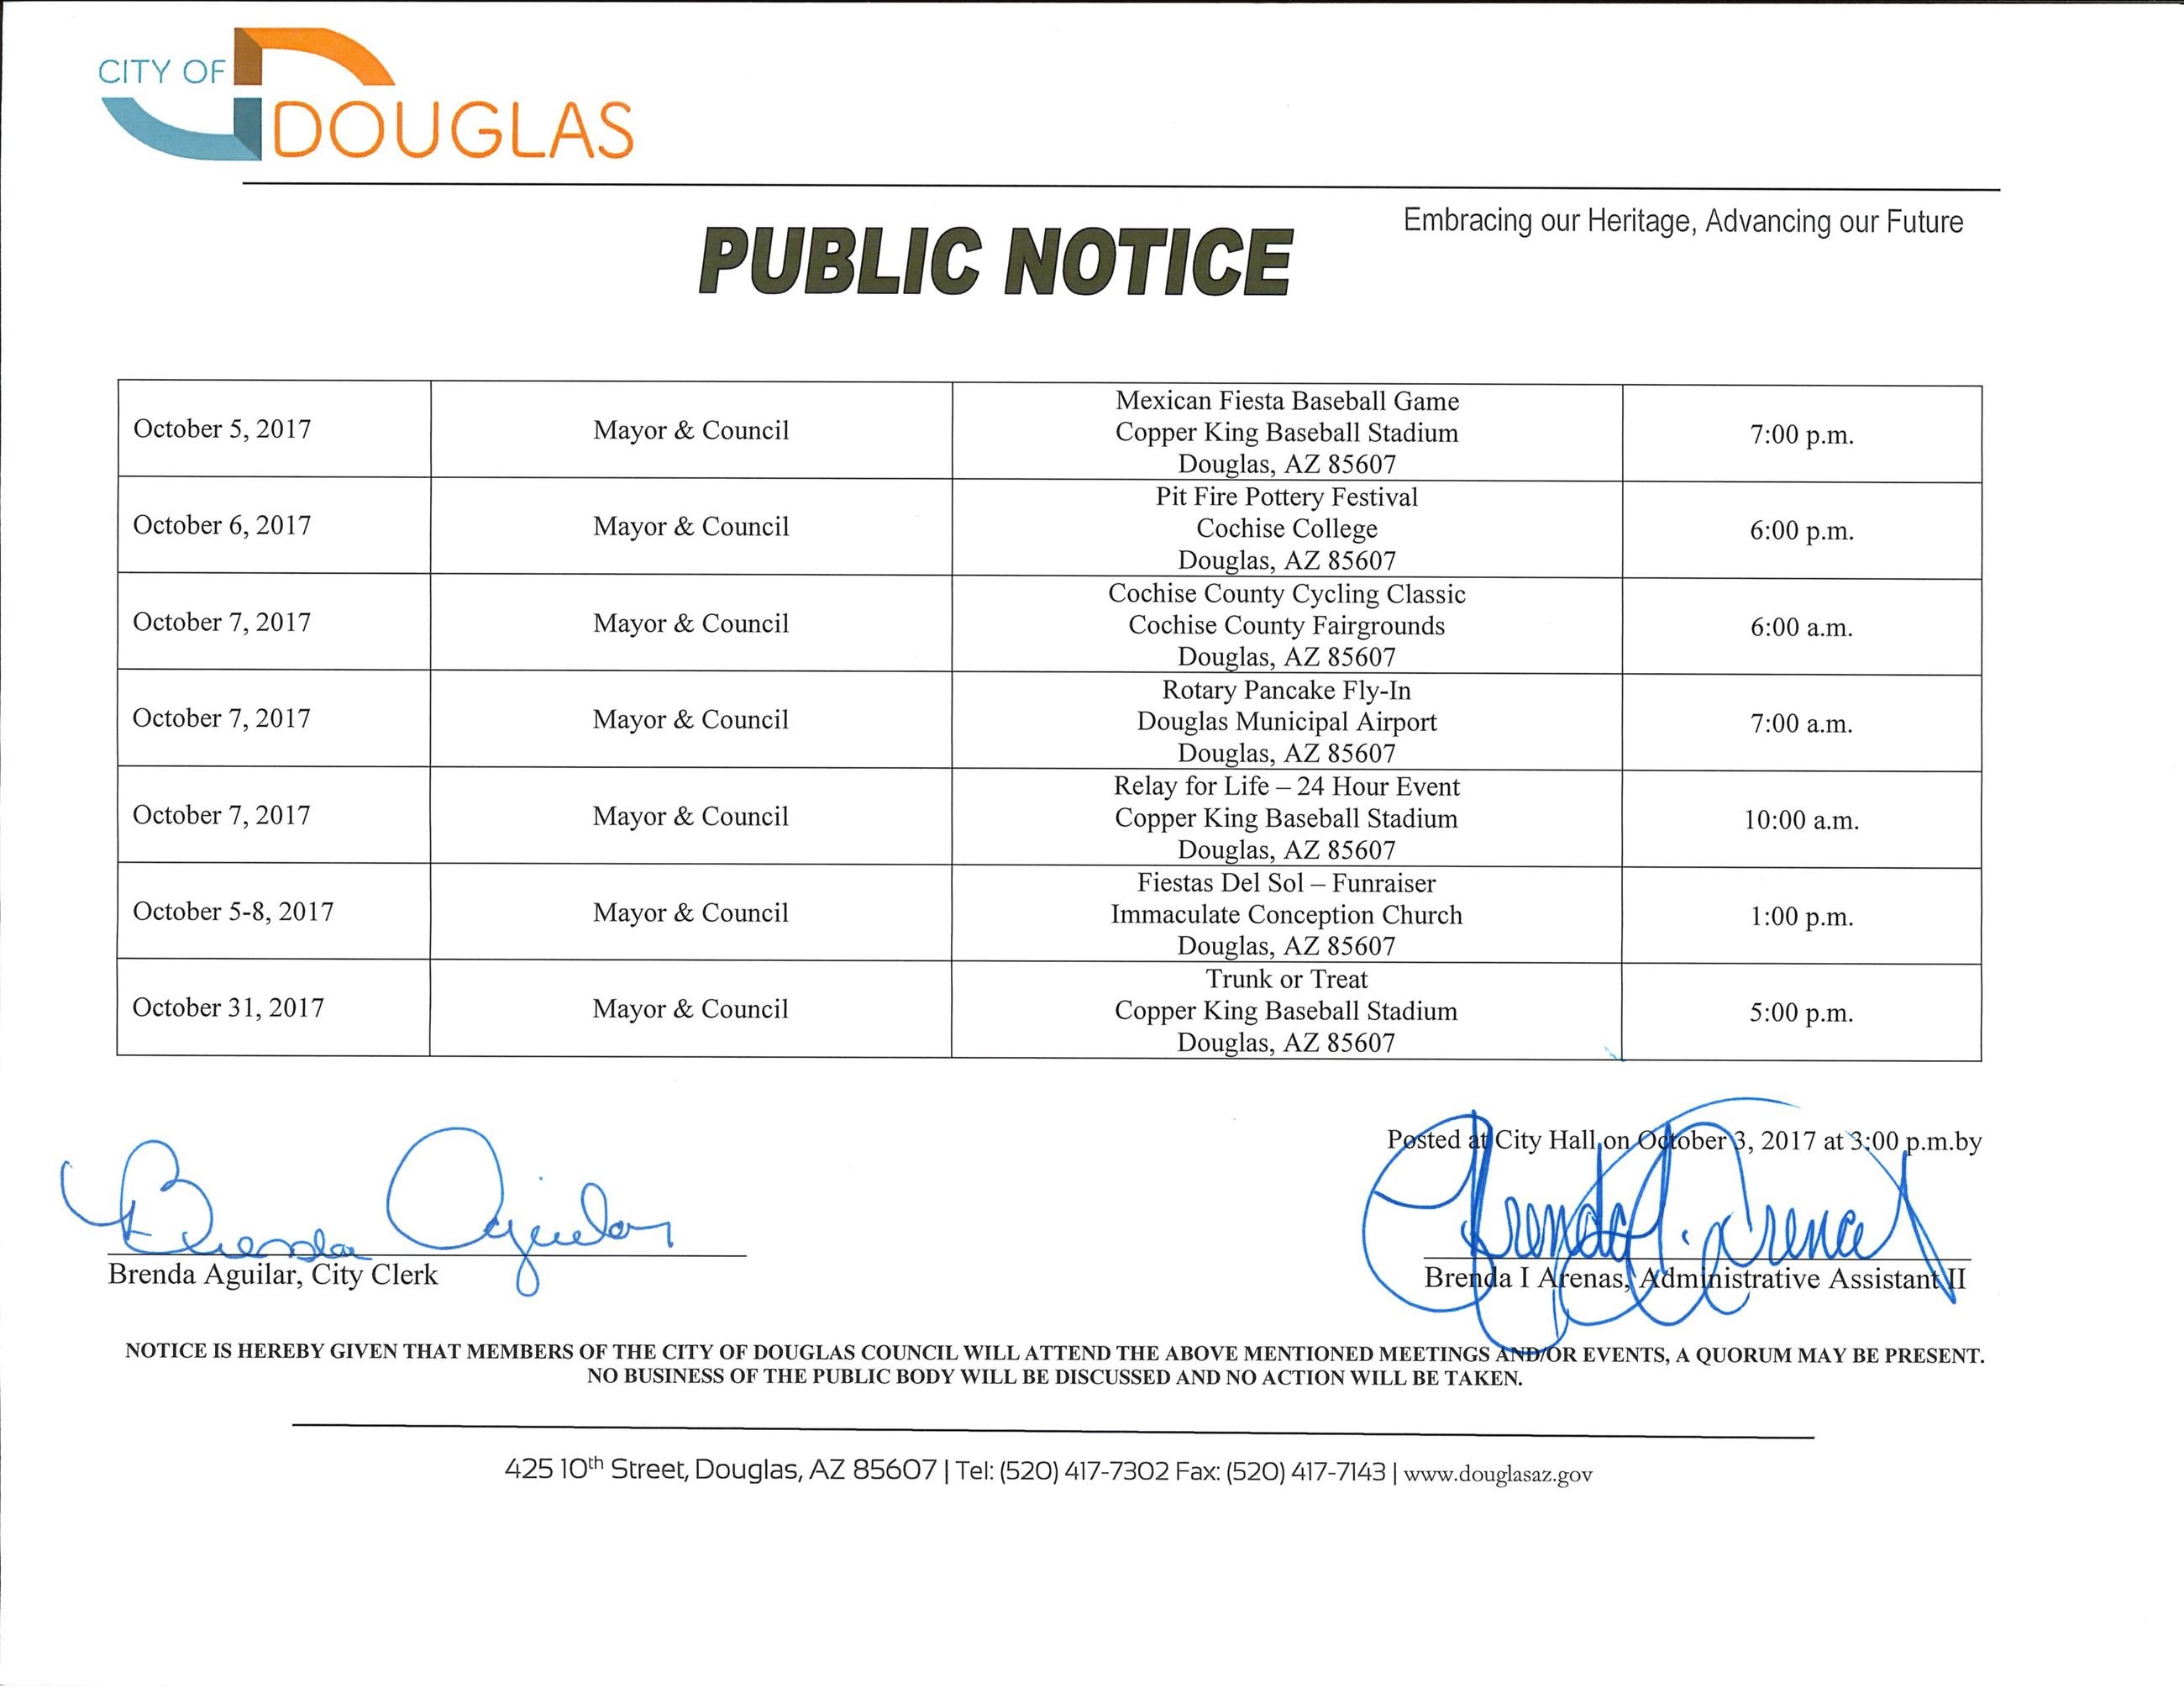 Mayor and Council Public Notice